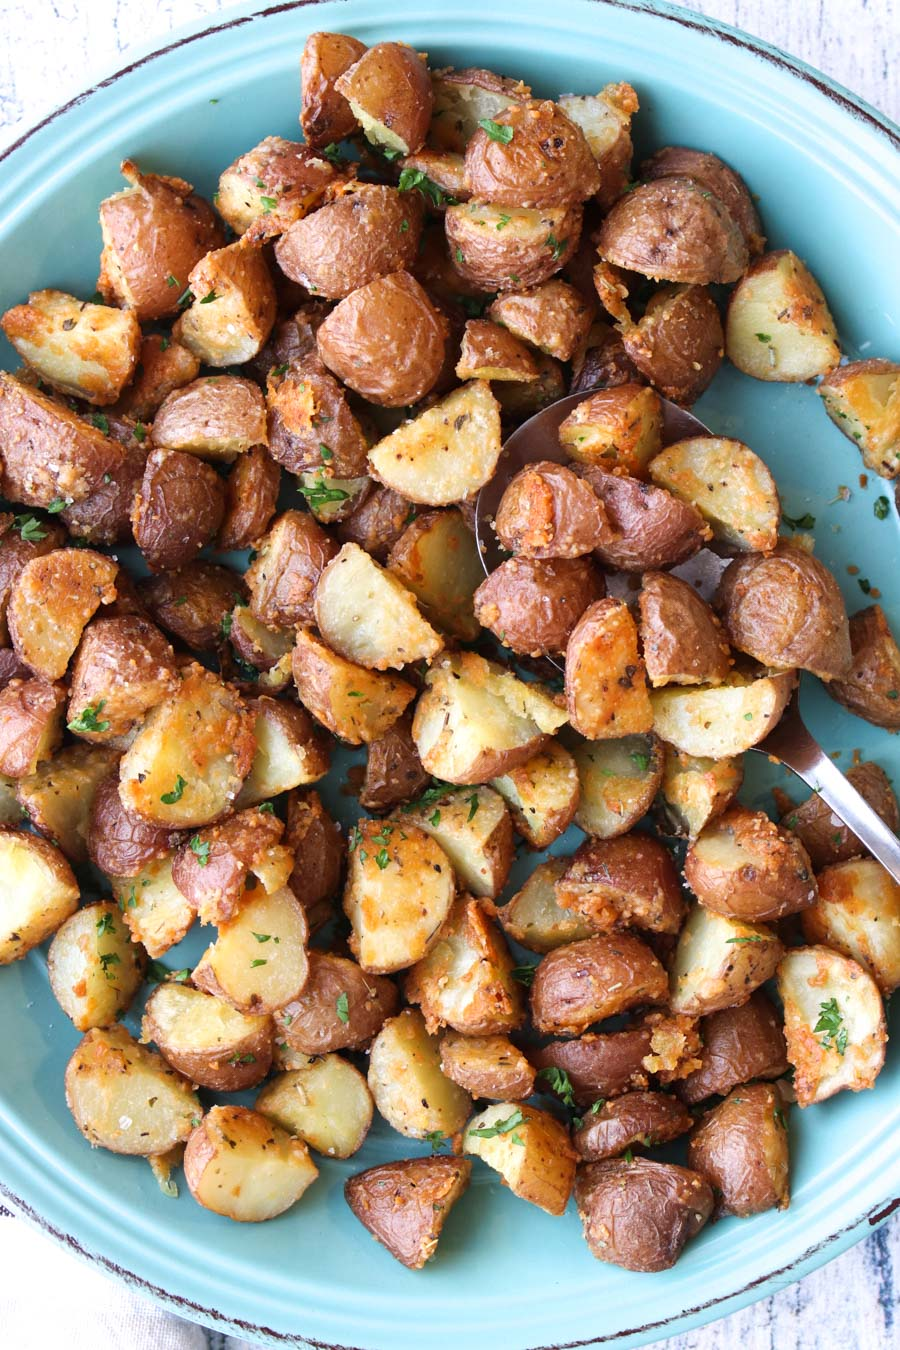 a turquoise plate full of roasted potatoes